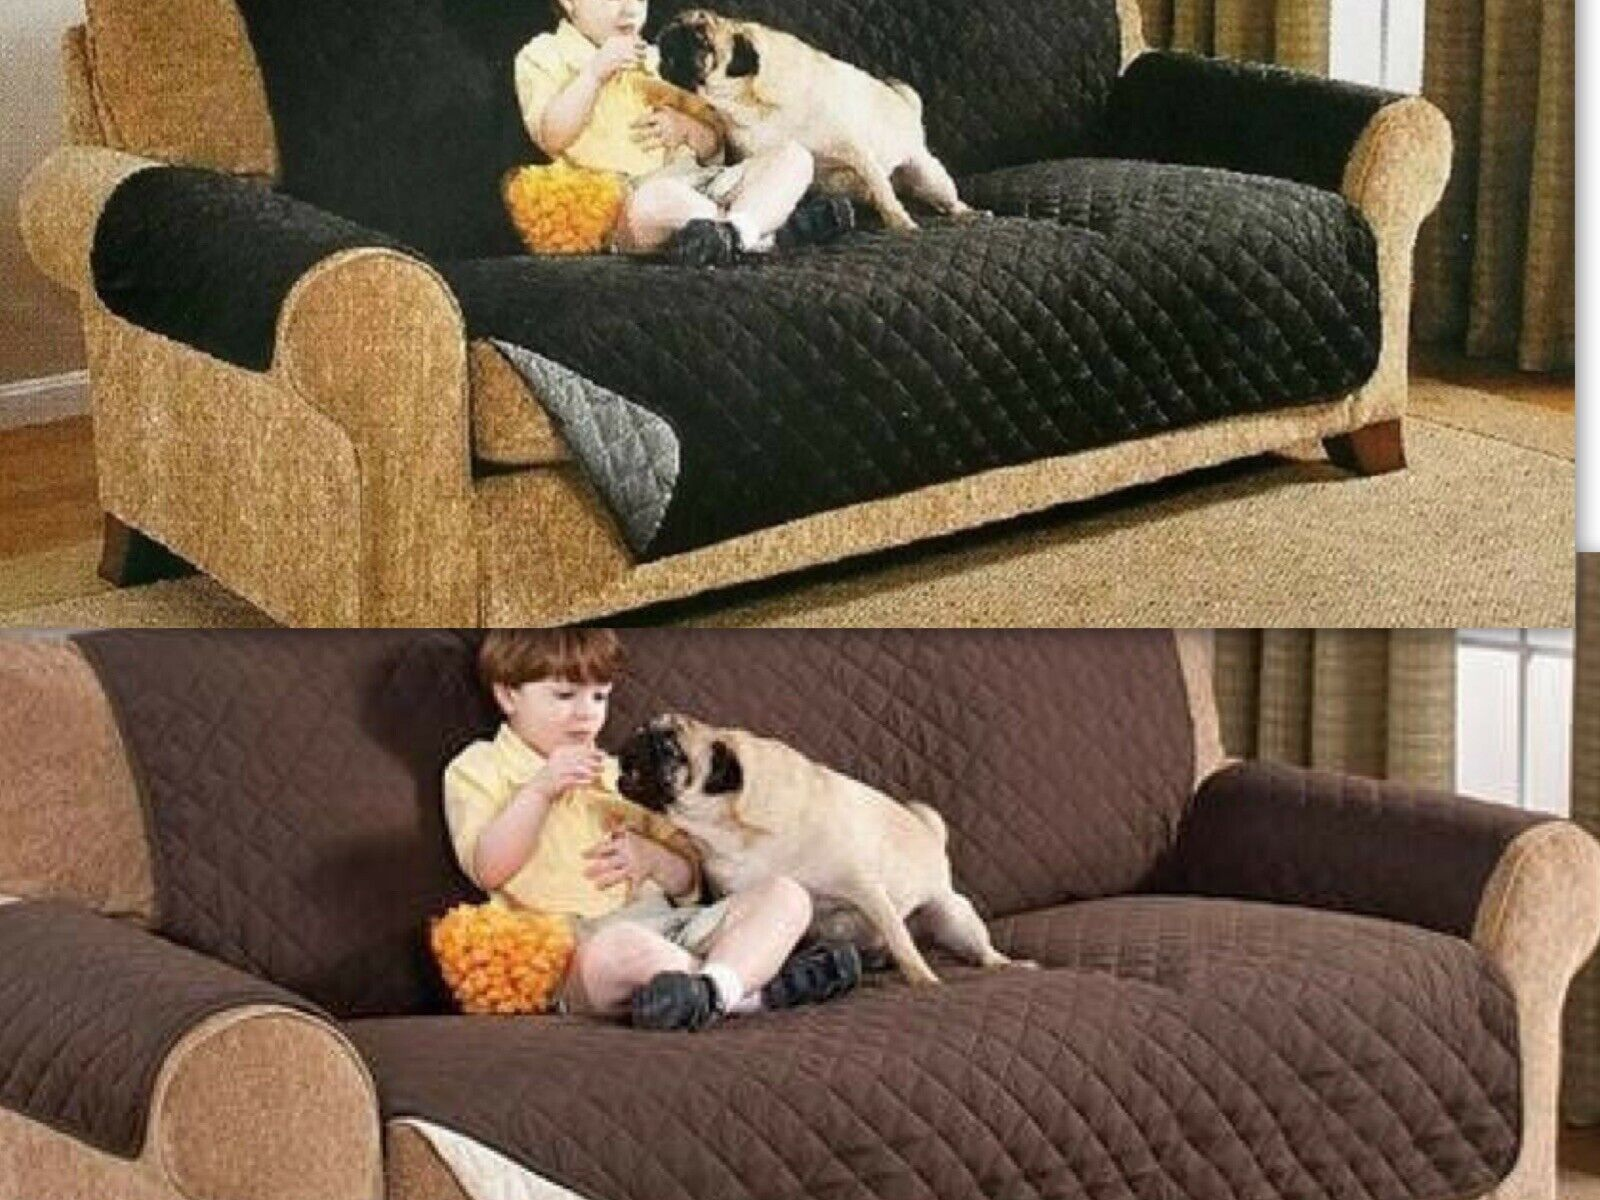 Reversible Sofa Covers For Pets Furniture Protector Sofa 75 X110 Slipcovers For Sale Online Ebay